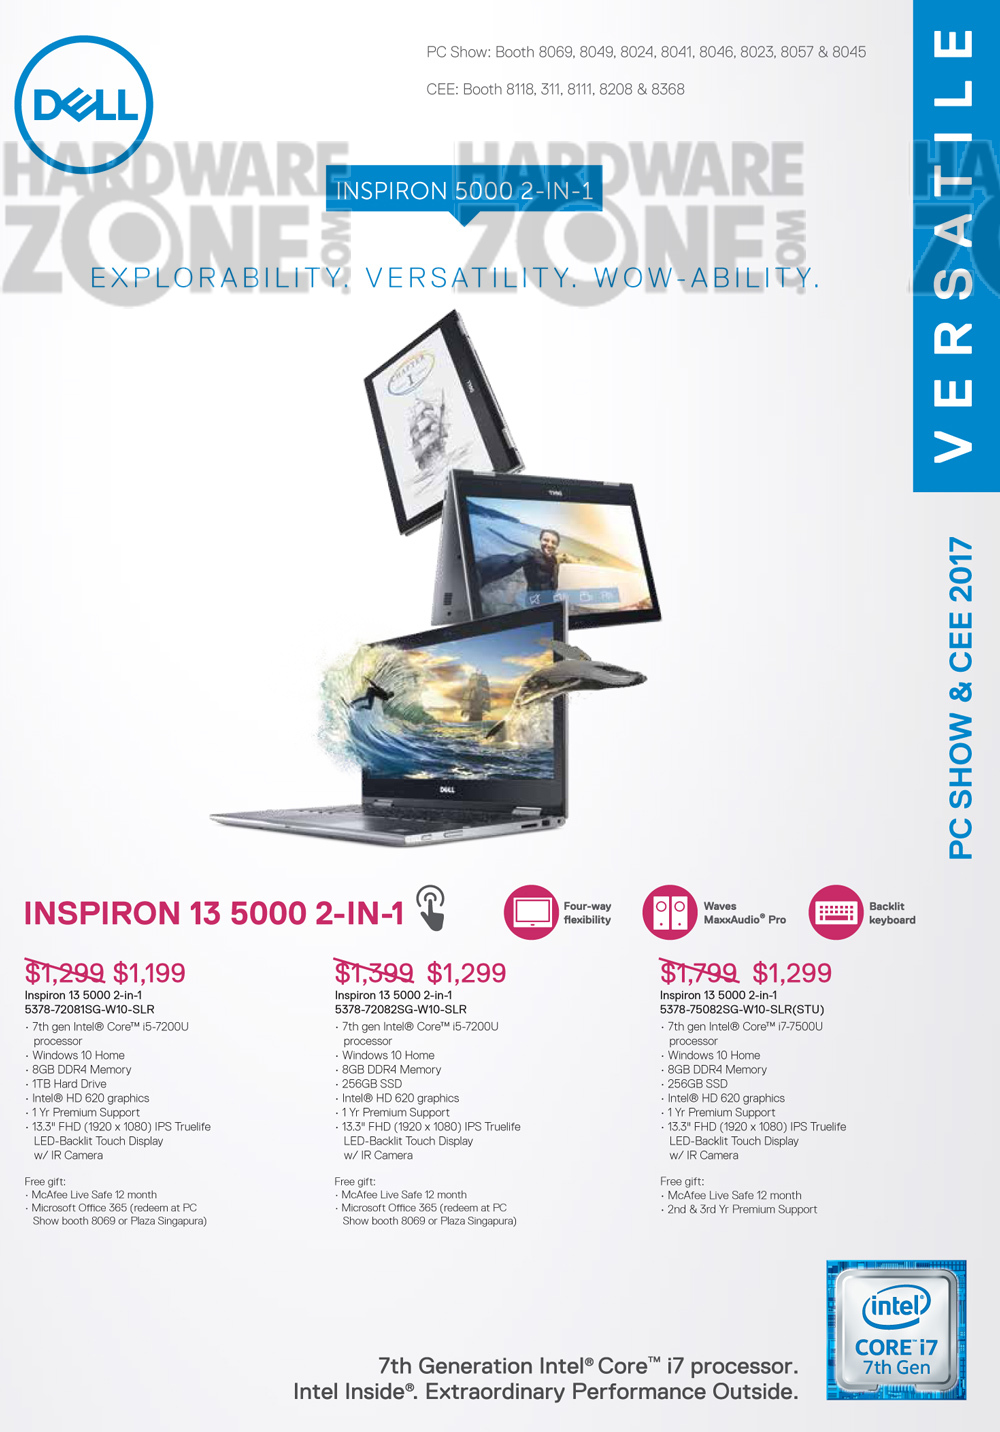 Asus gaming desktops amp monitors brochures from cee show 2016 singapore - Dell Flyer Pg 1